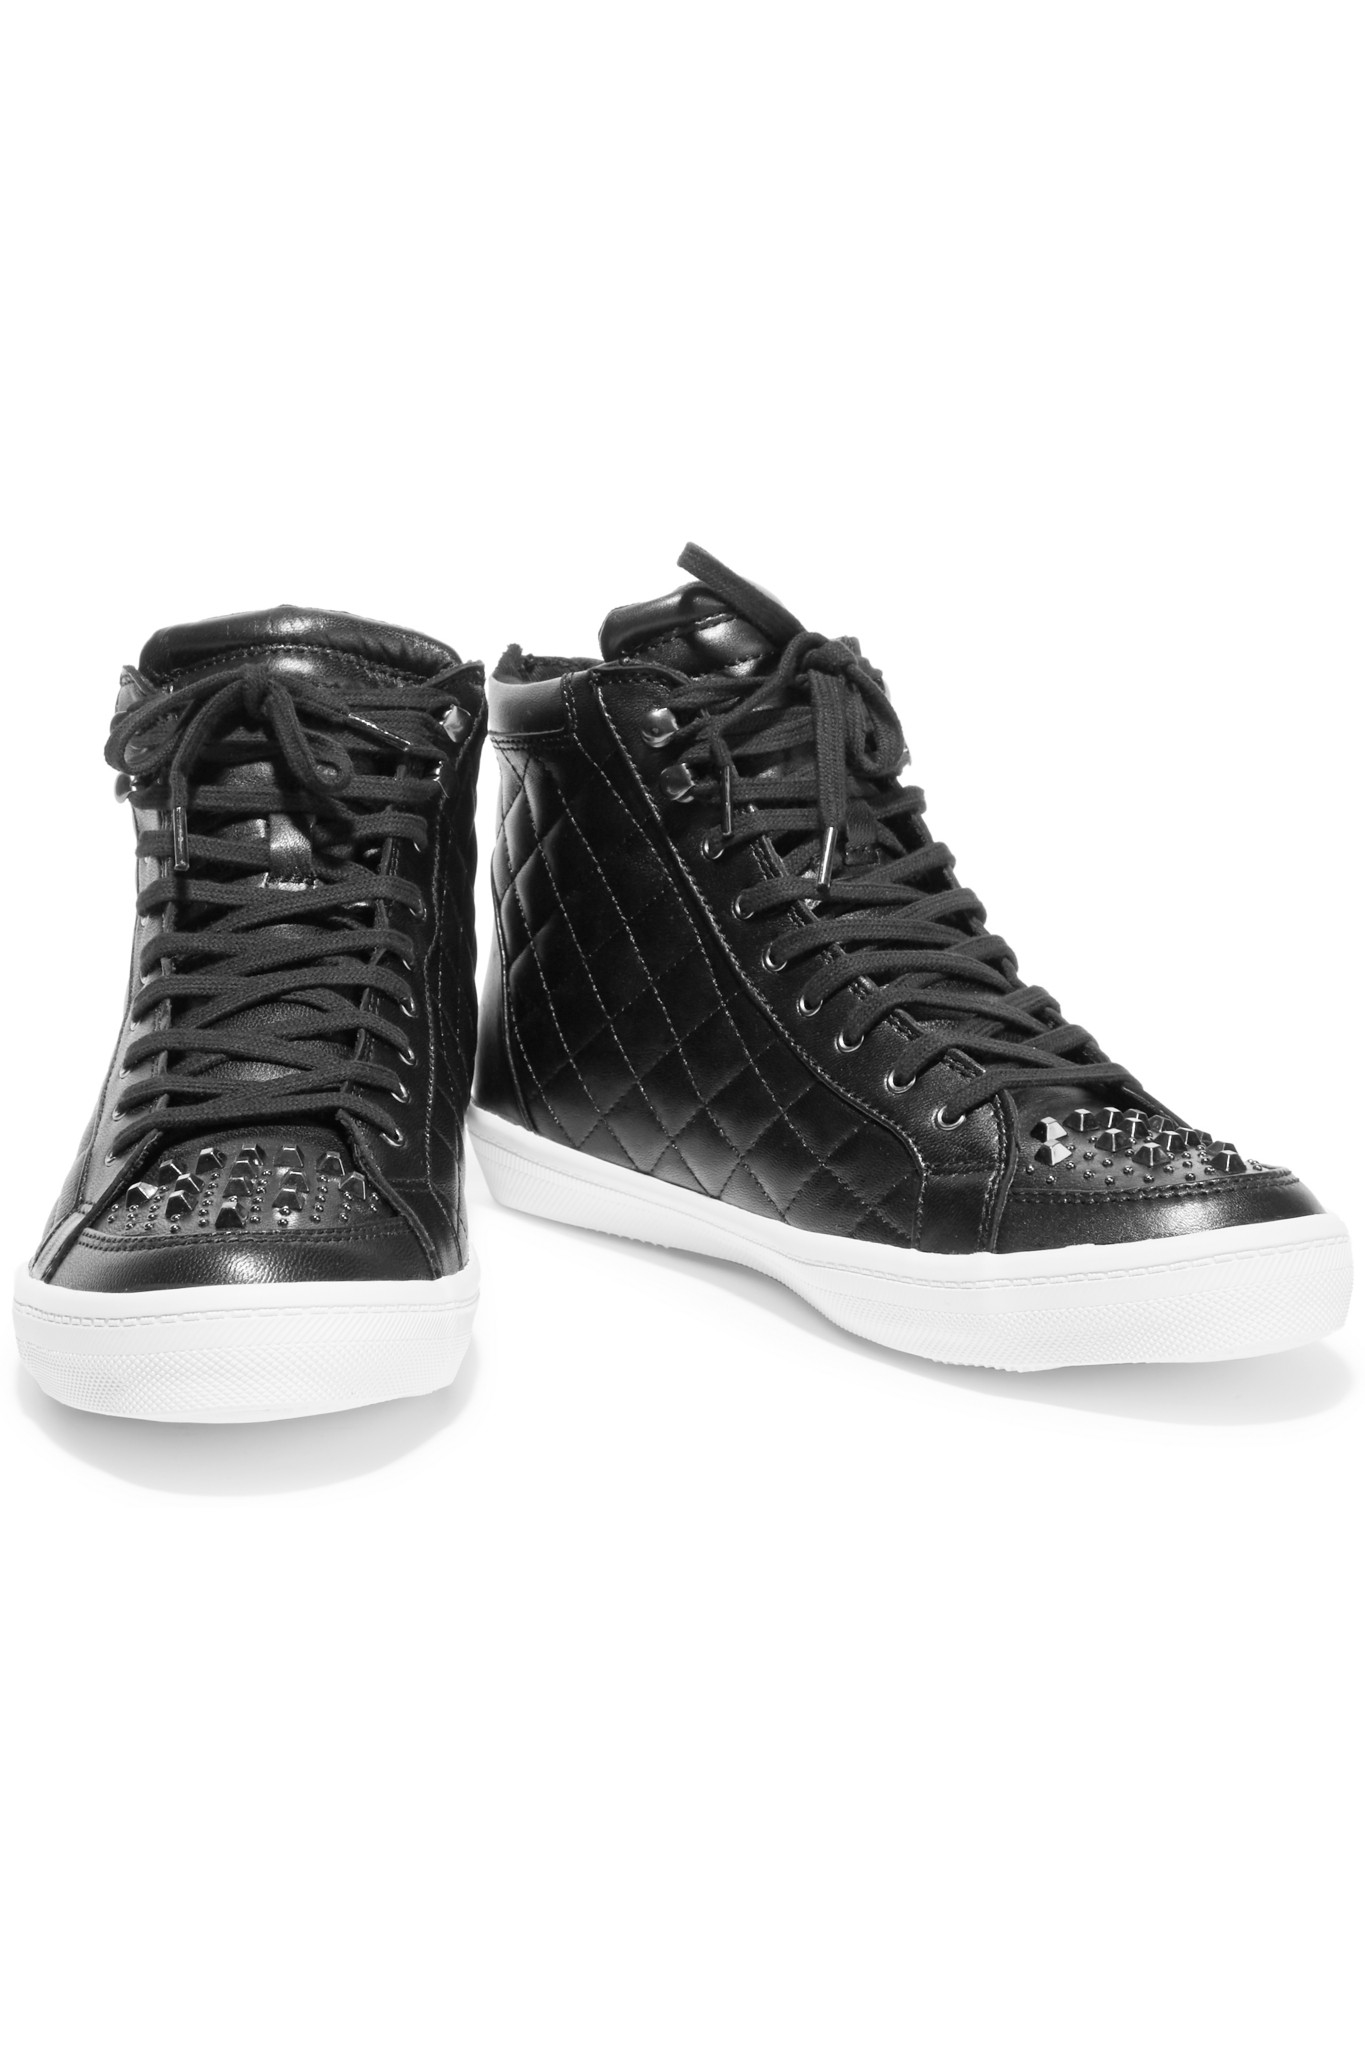 Rebecca Minkoff Sandi Studded Quilted Leather Sneakers in Black